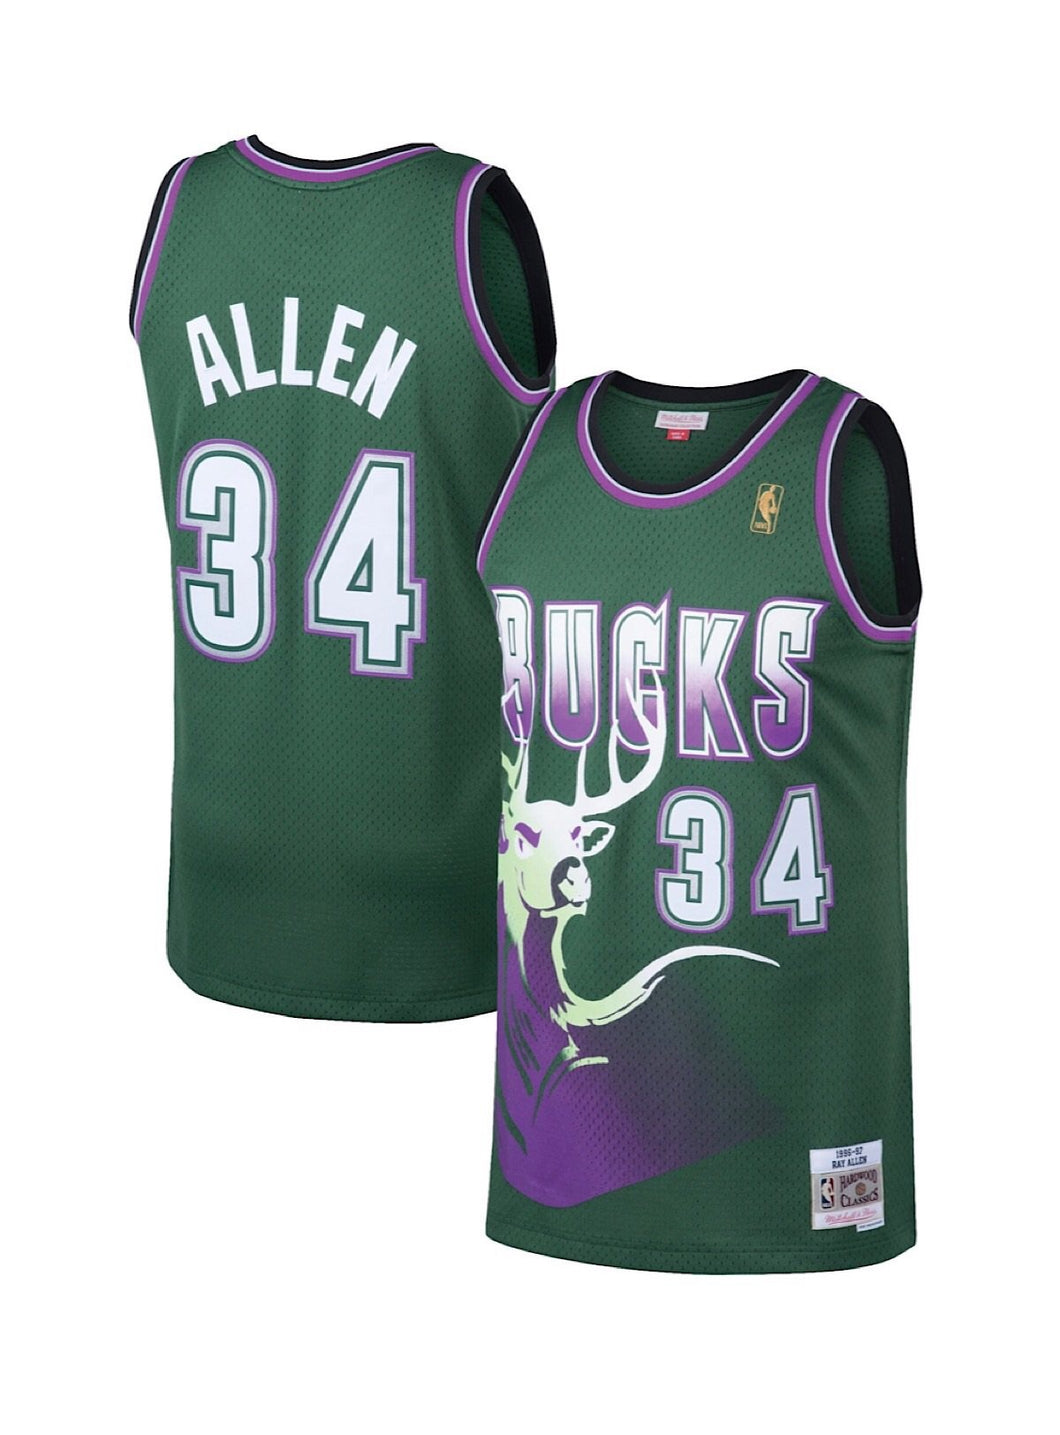 GREEN AND PURPLE MILWAUKEE BUCKS